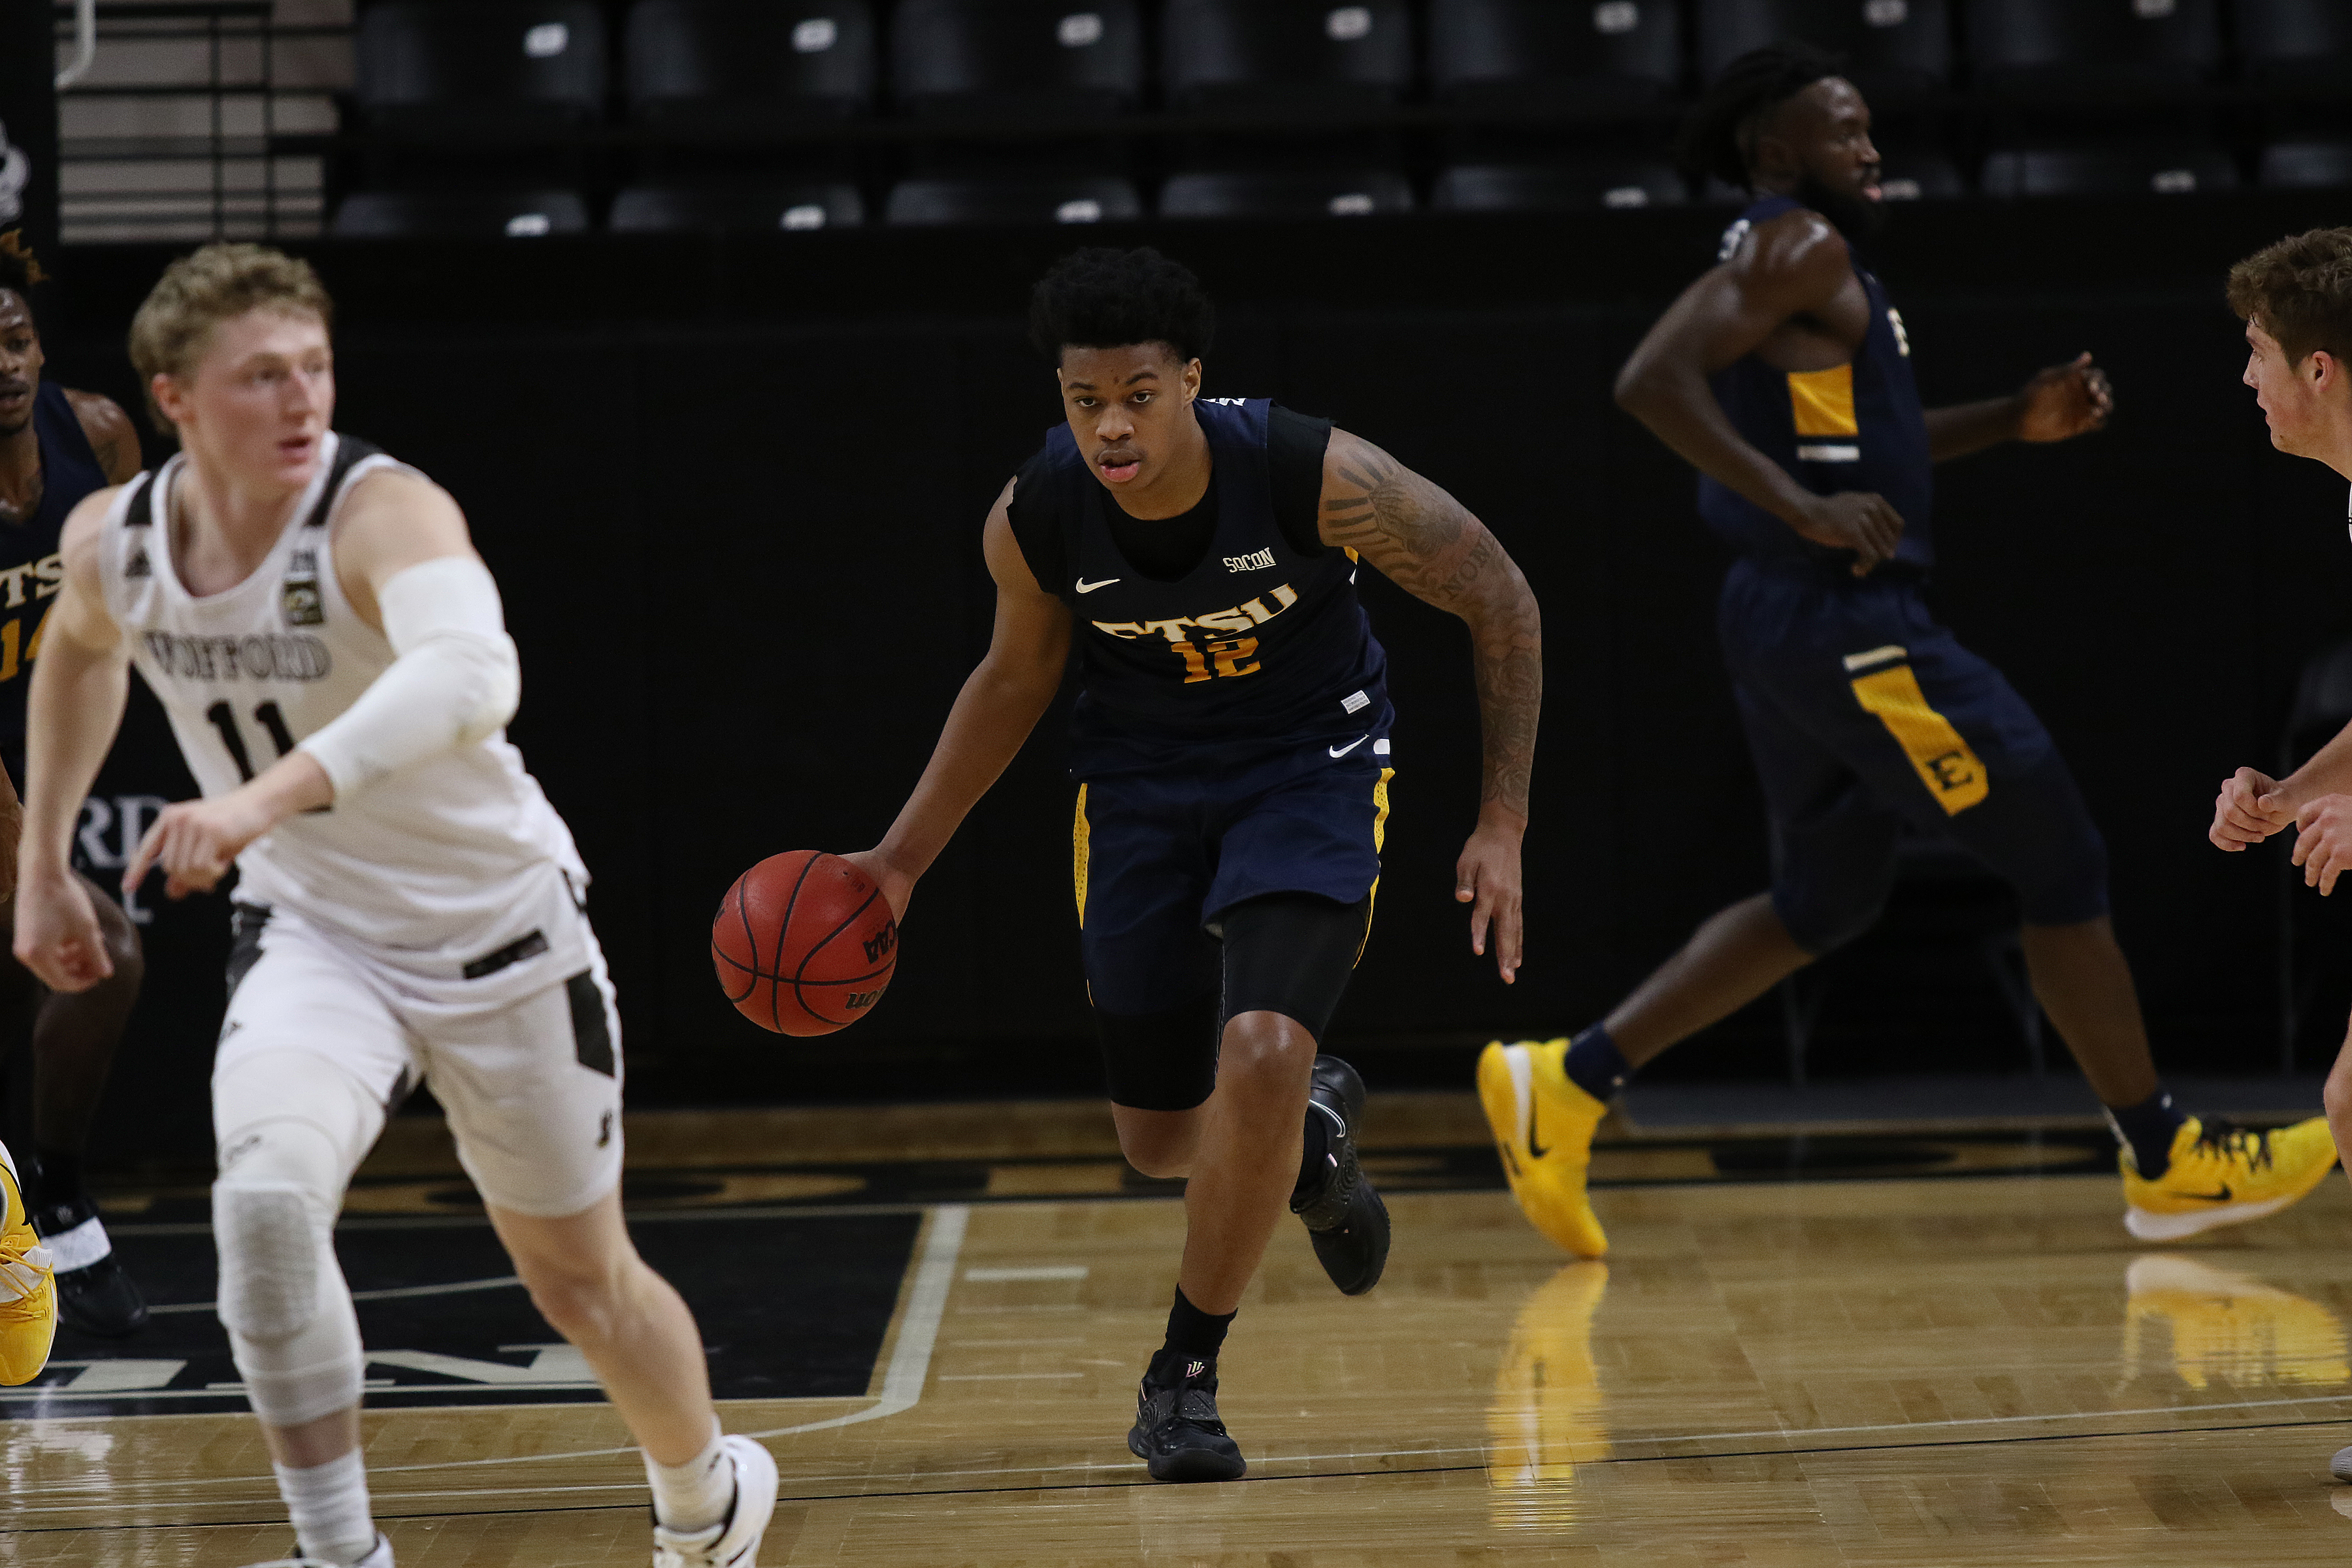 COLLEGE BASKETBALL: FEB 01 East Tennessee State at Wofford